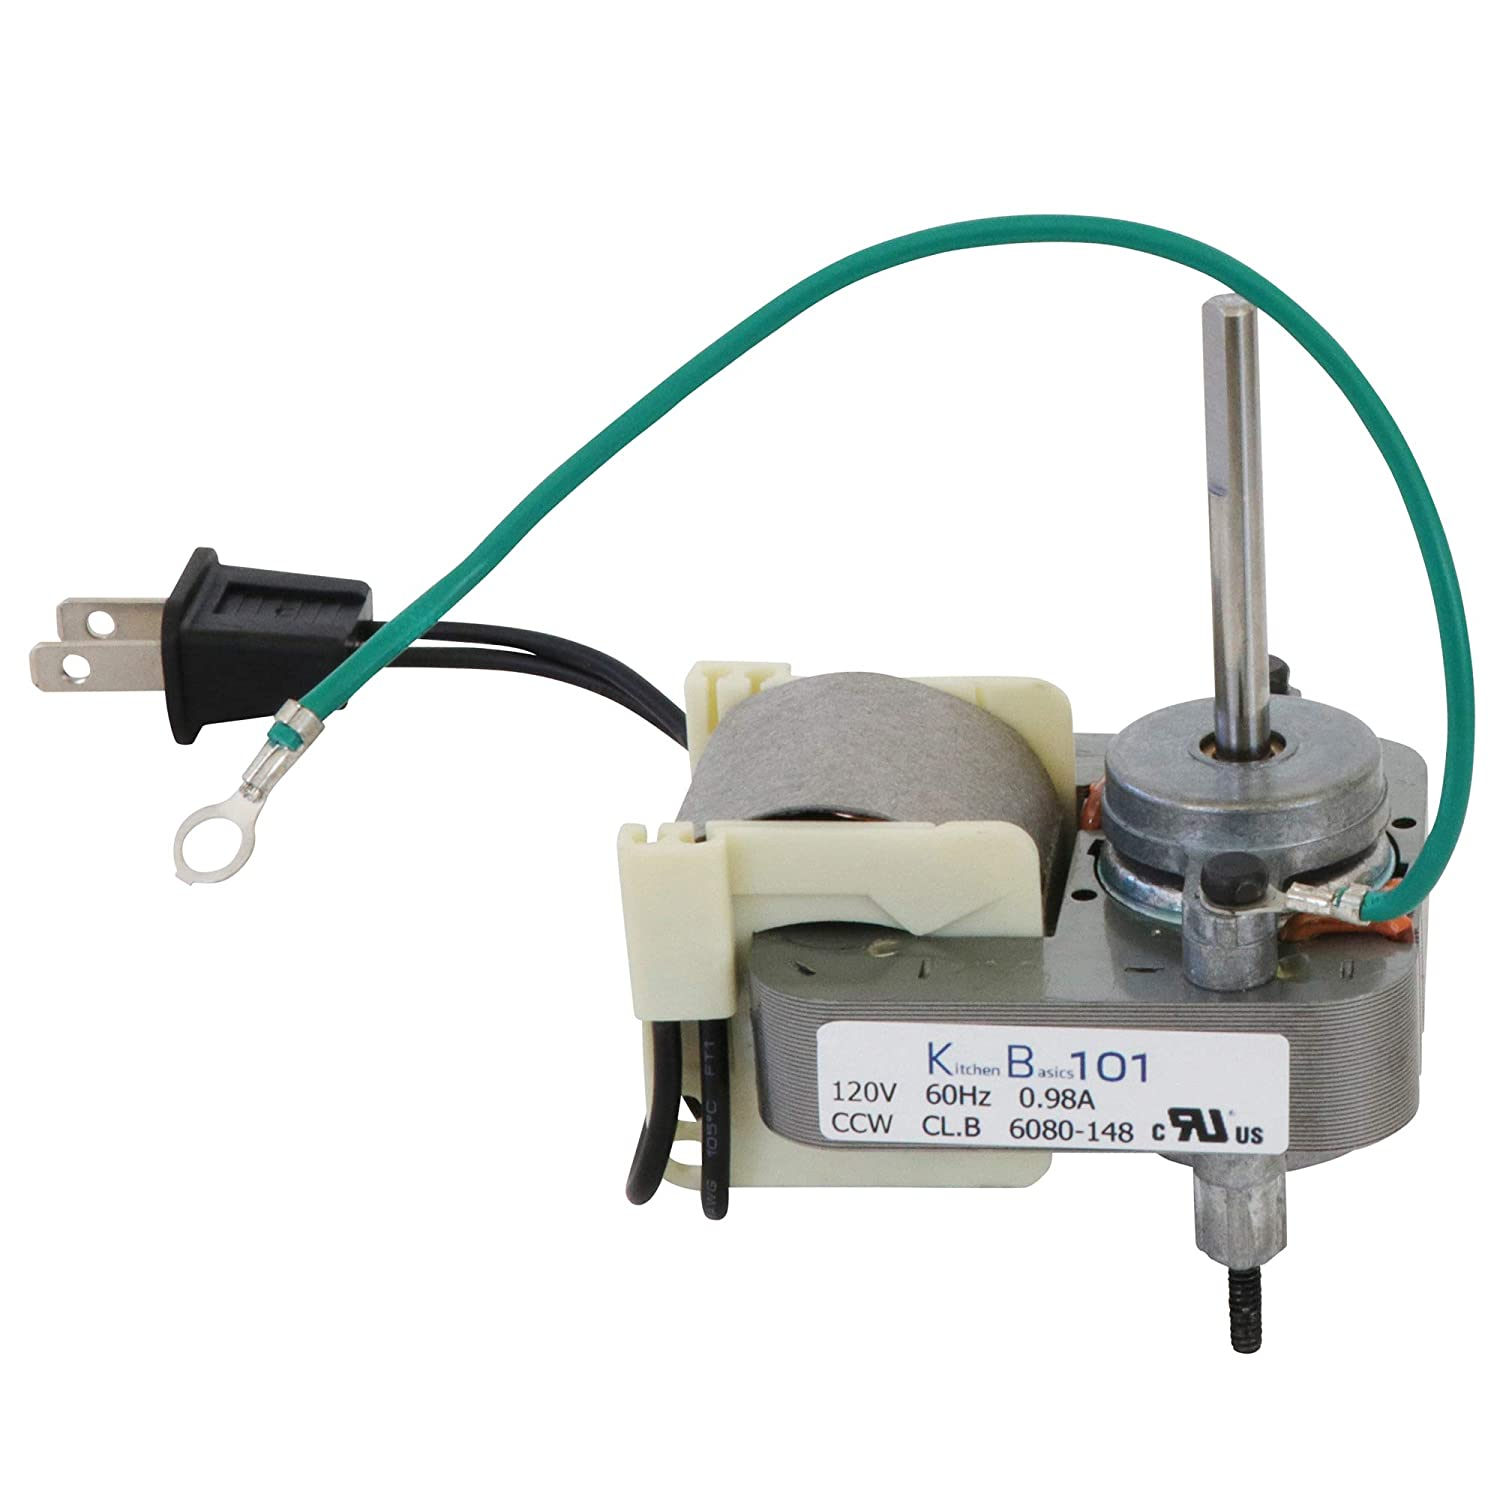 Kitchen Basics 101: 89850000 Ventilation Fan Motor Replacement for Nutone